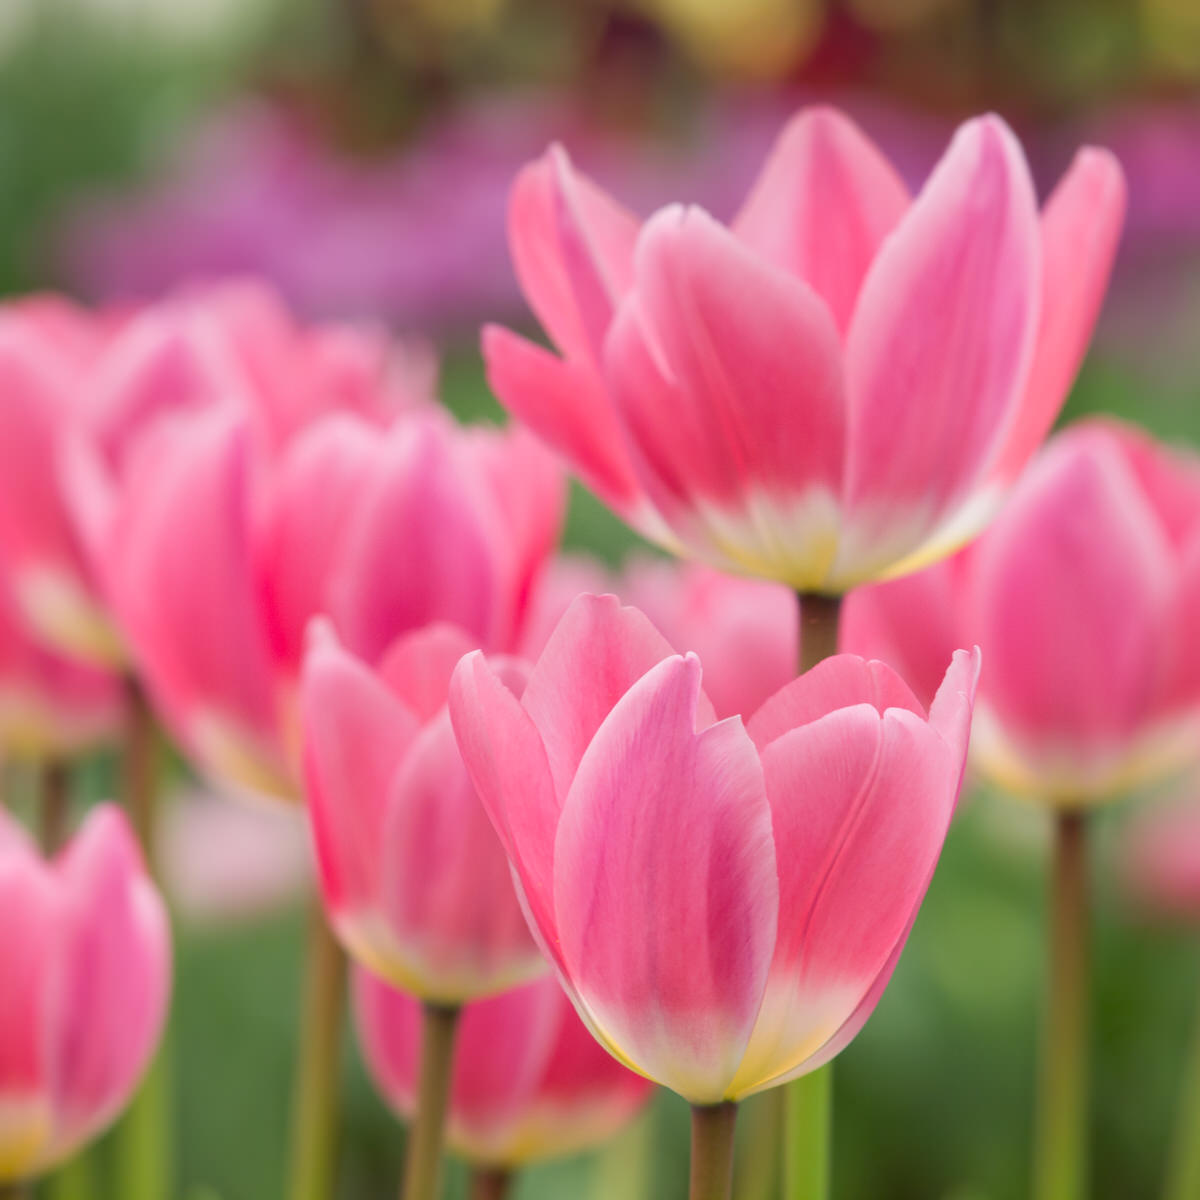 colorful-tulips-PKZ8NFX-1.jpg